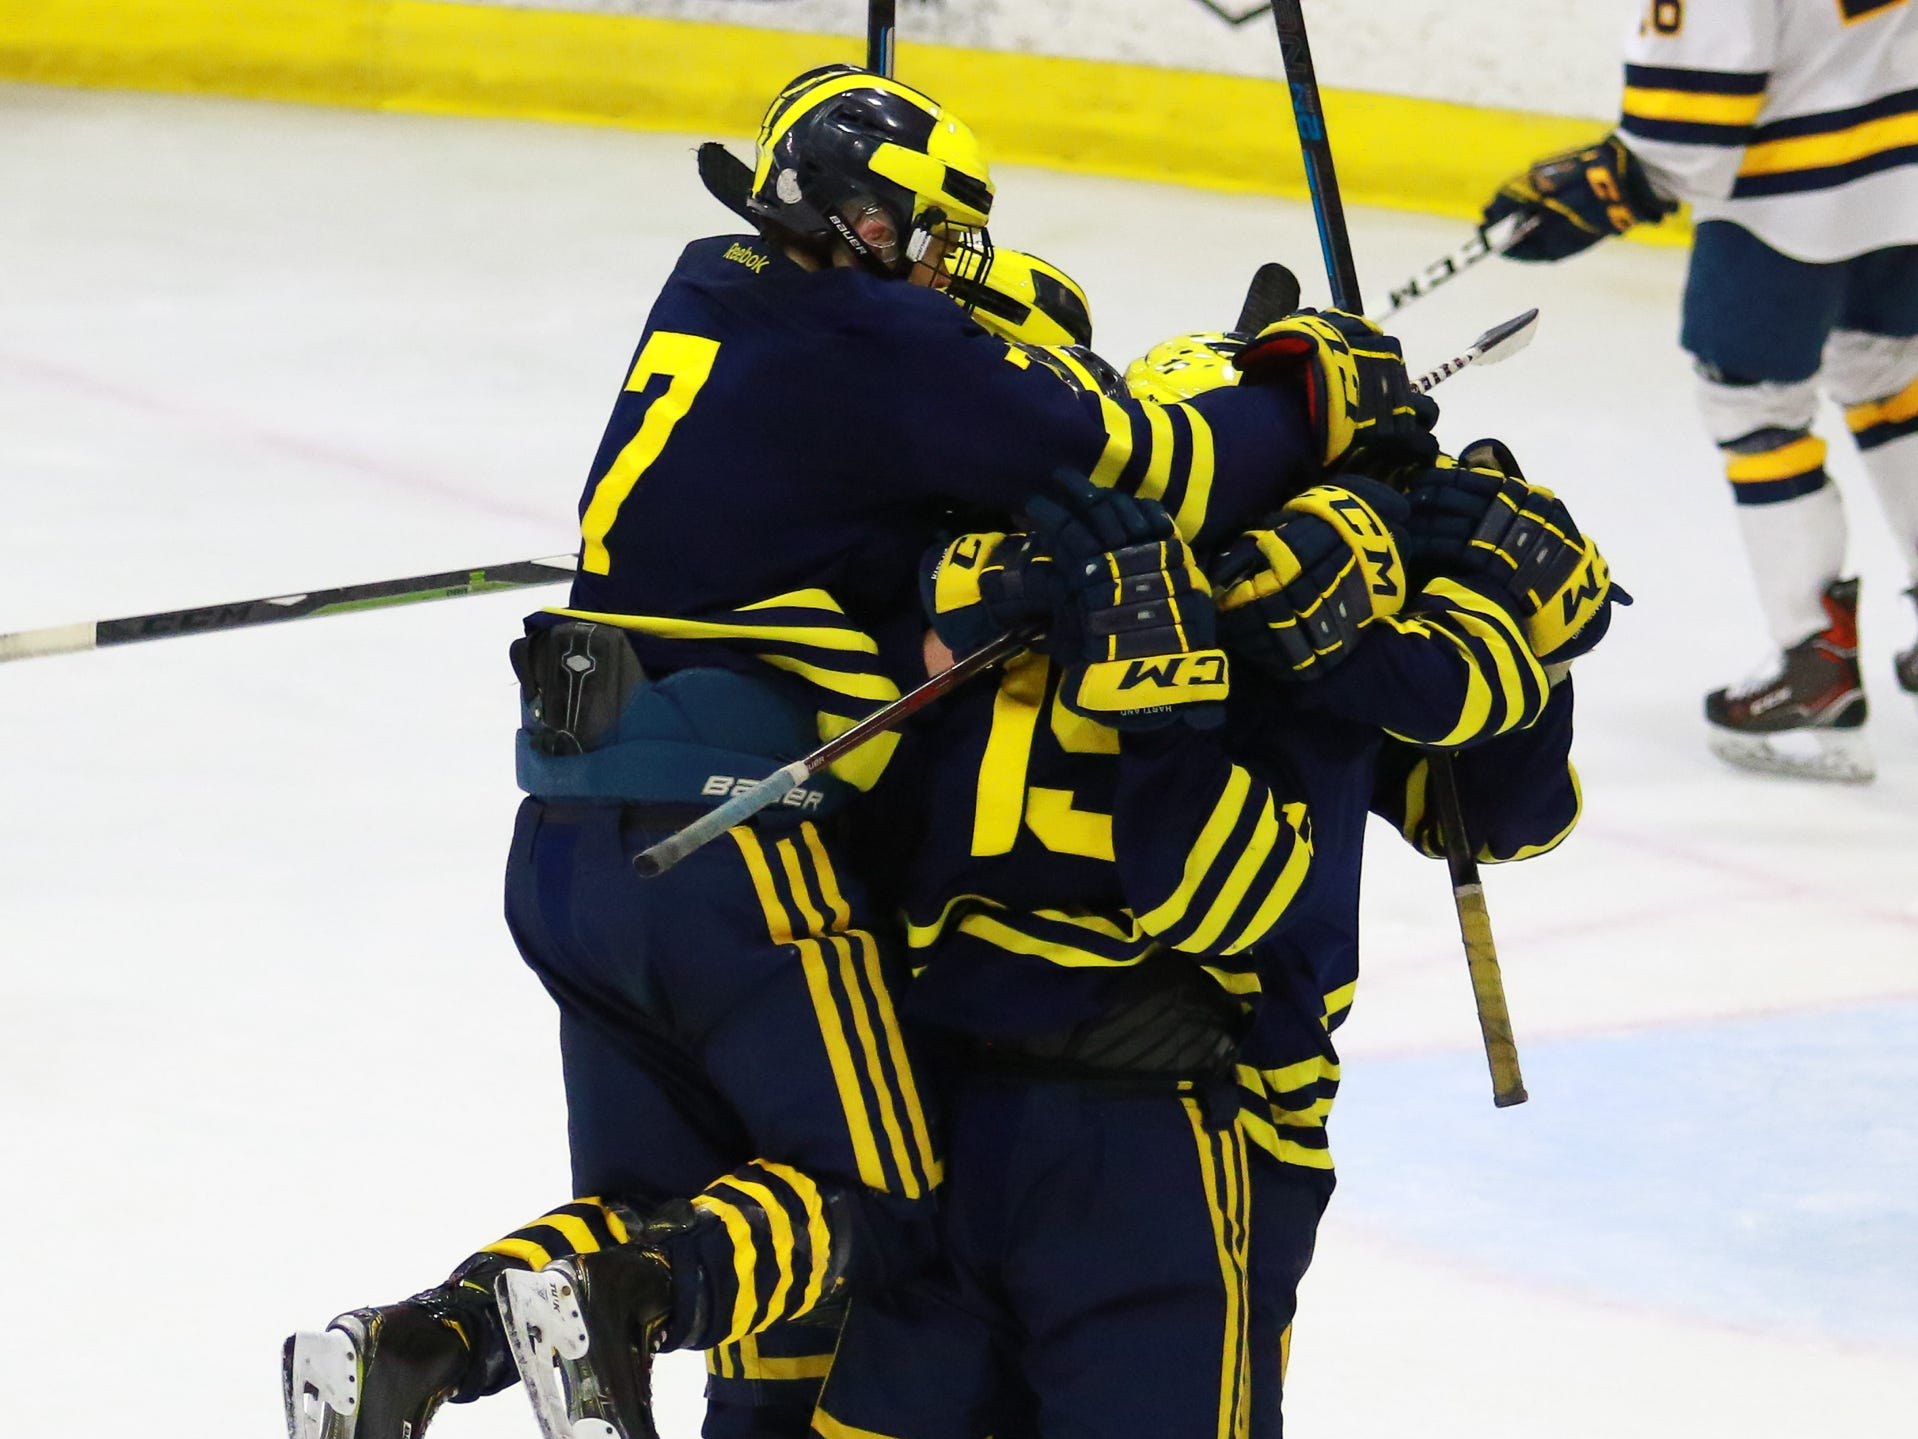 Hartland celebrates its final goal in a 4-0 victory over Trenton in the state Division 2 championship hockey game on Saturday, March 9, 2019 at USA Hockey Arena.